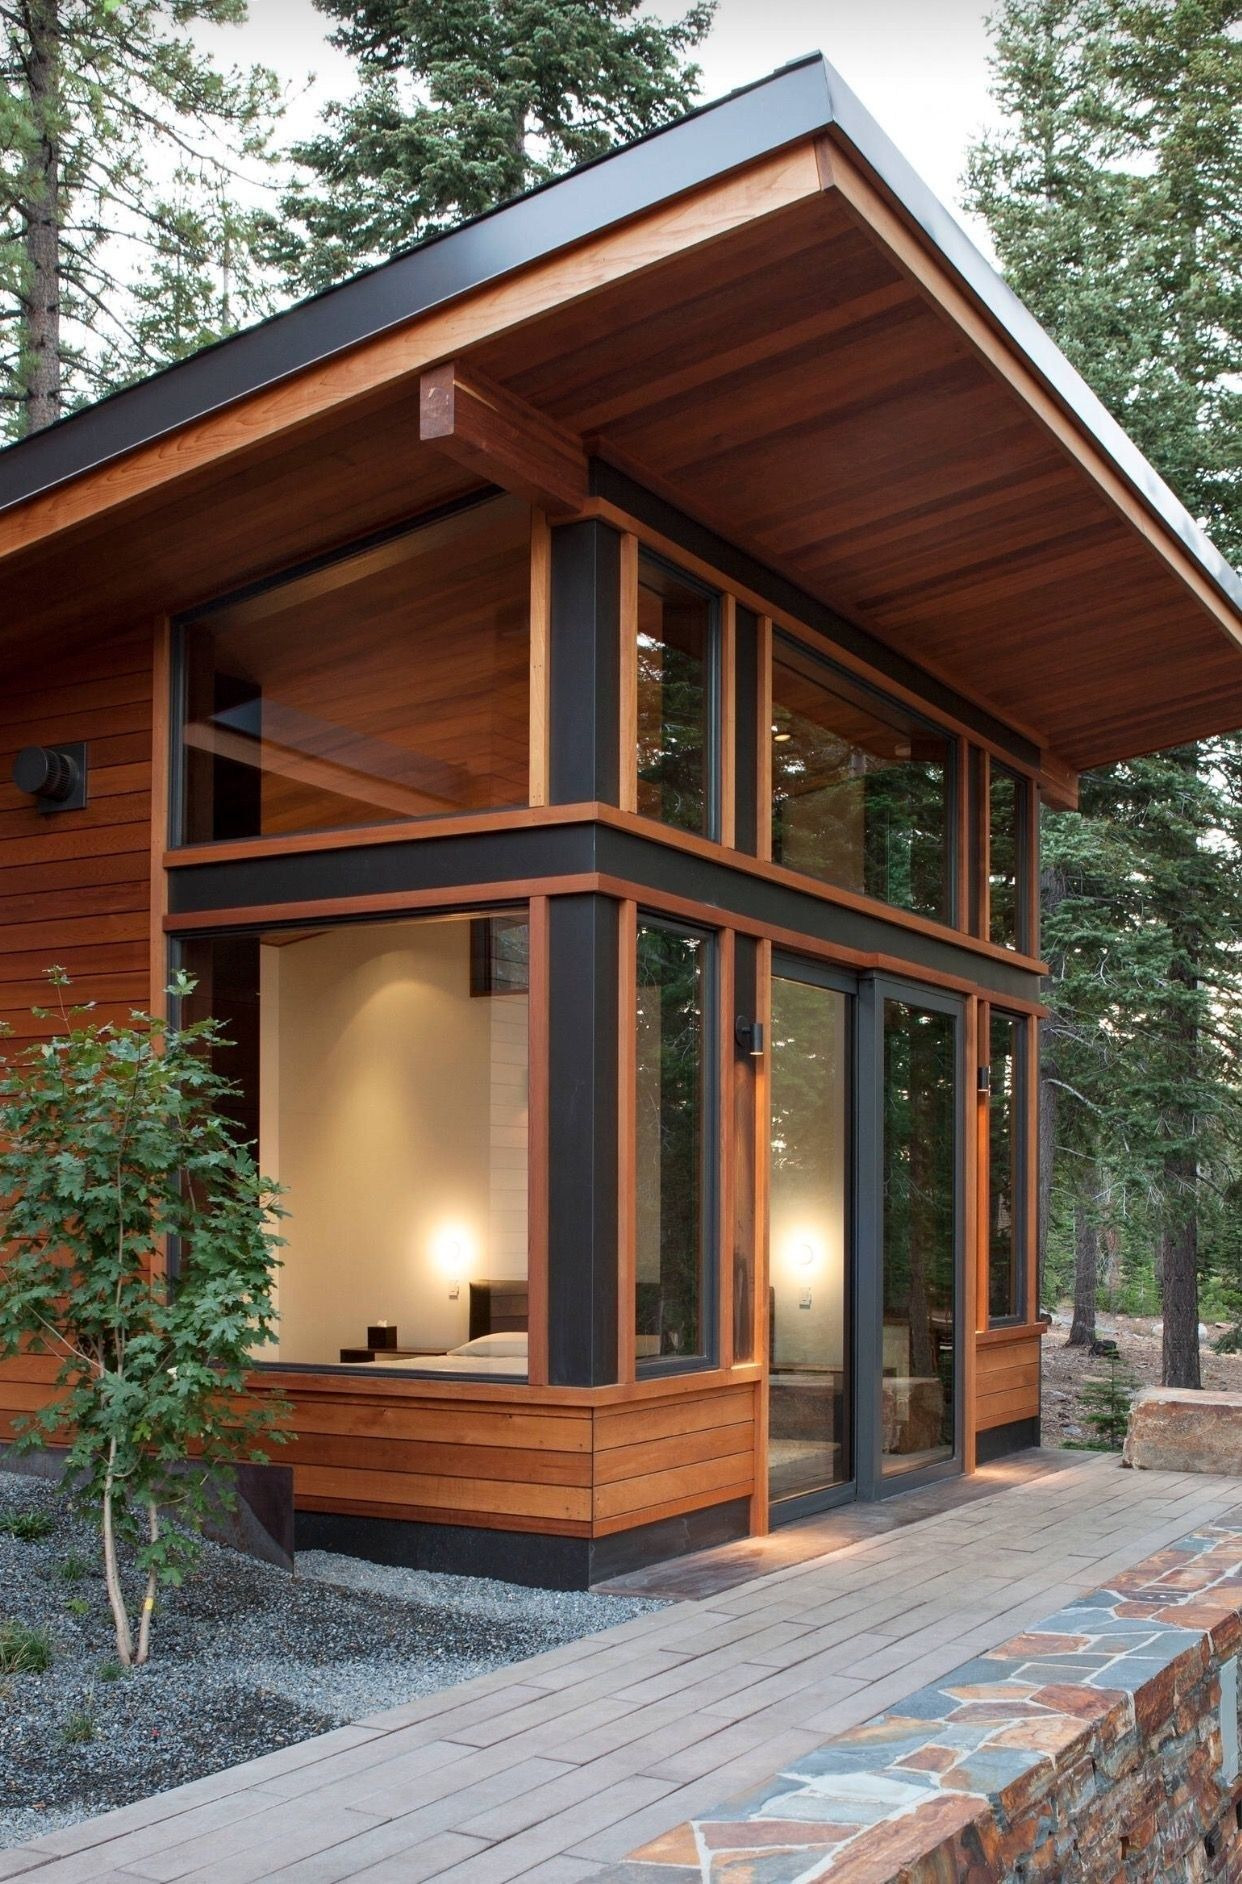 Small Modern Cabin Plans Inspirational New 60 Small Mountain Cabin Plans with Loft